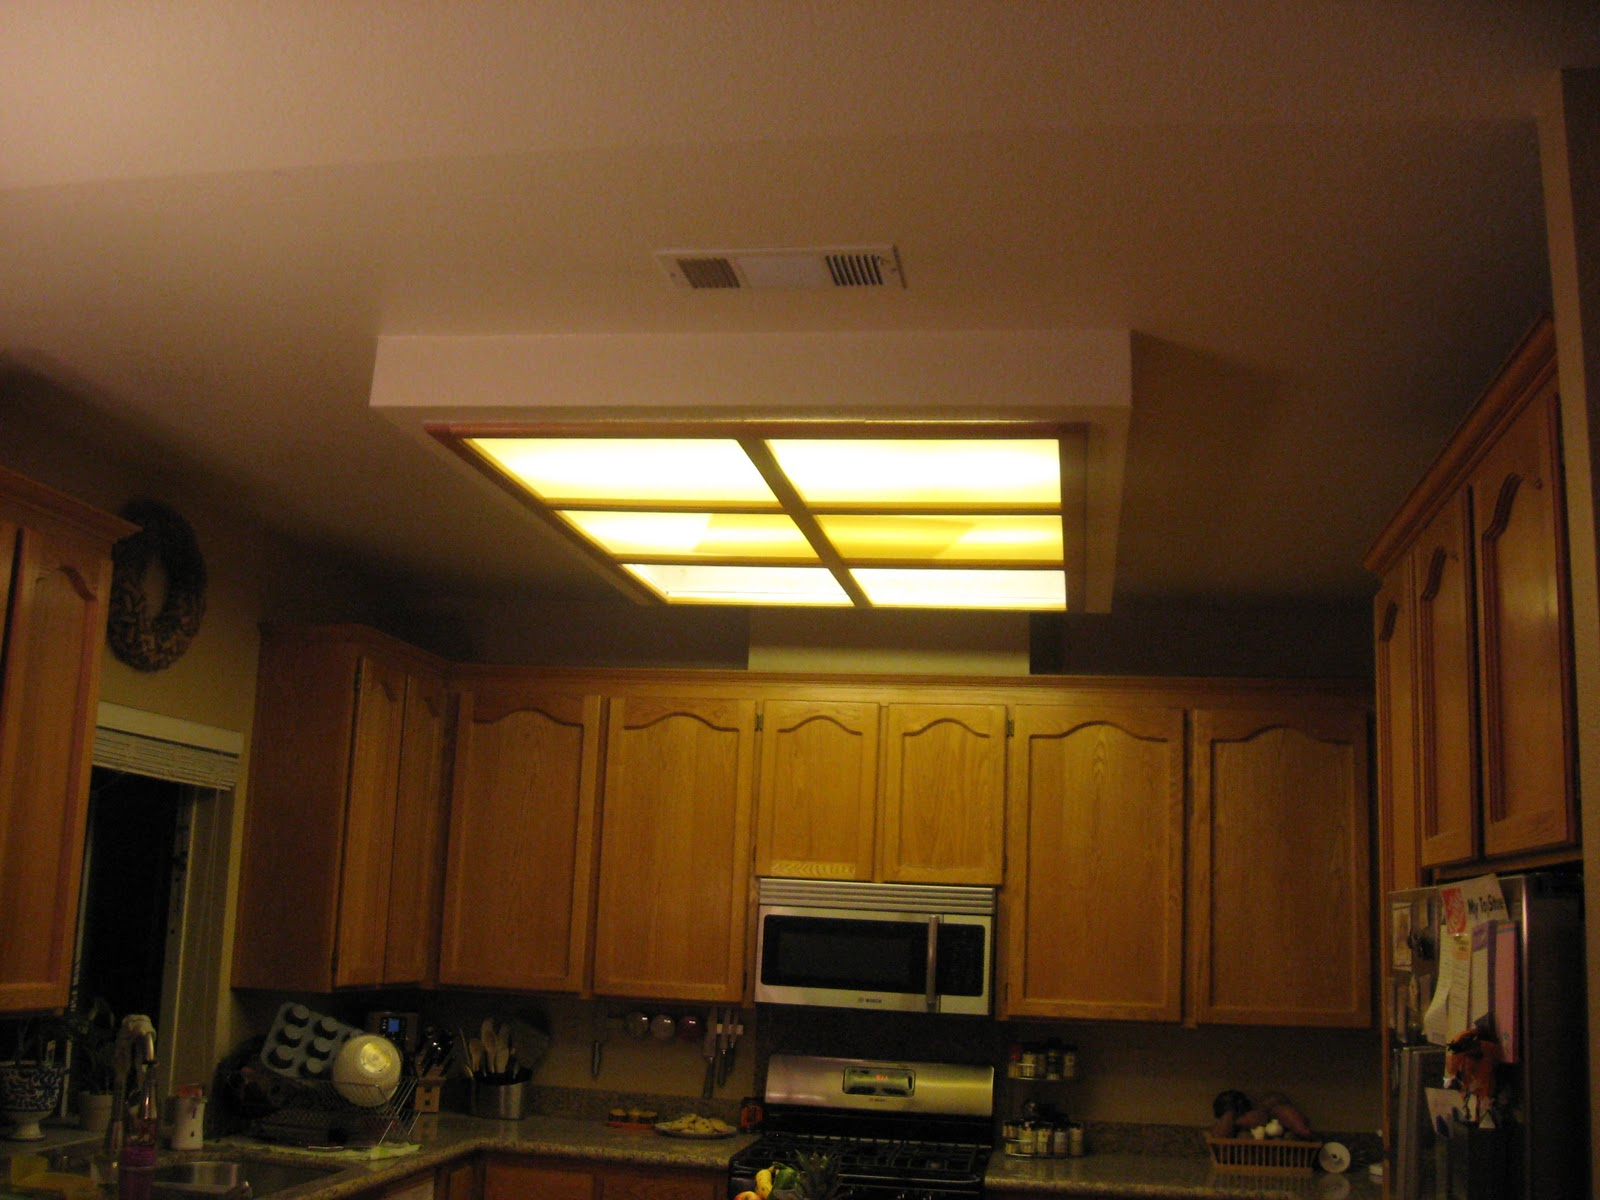 To replace a fluorecent box light and shave 30 years off your kitchen